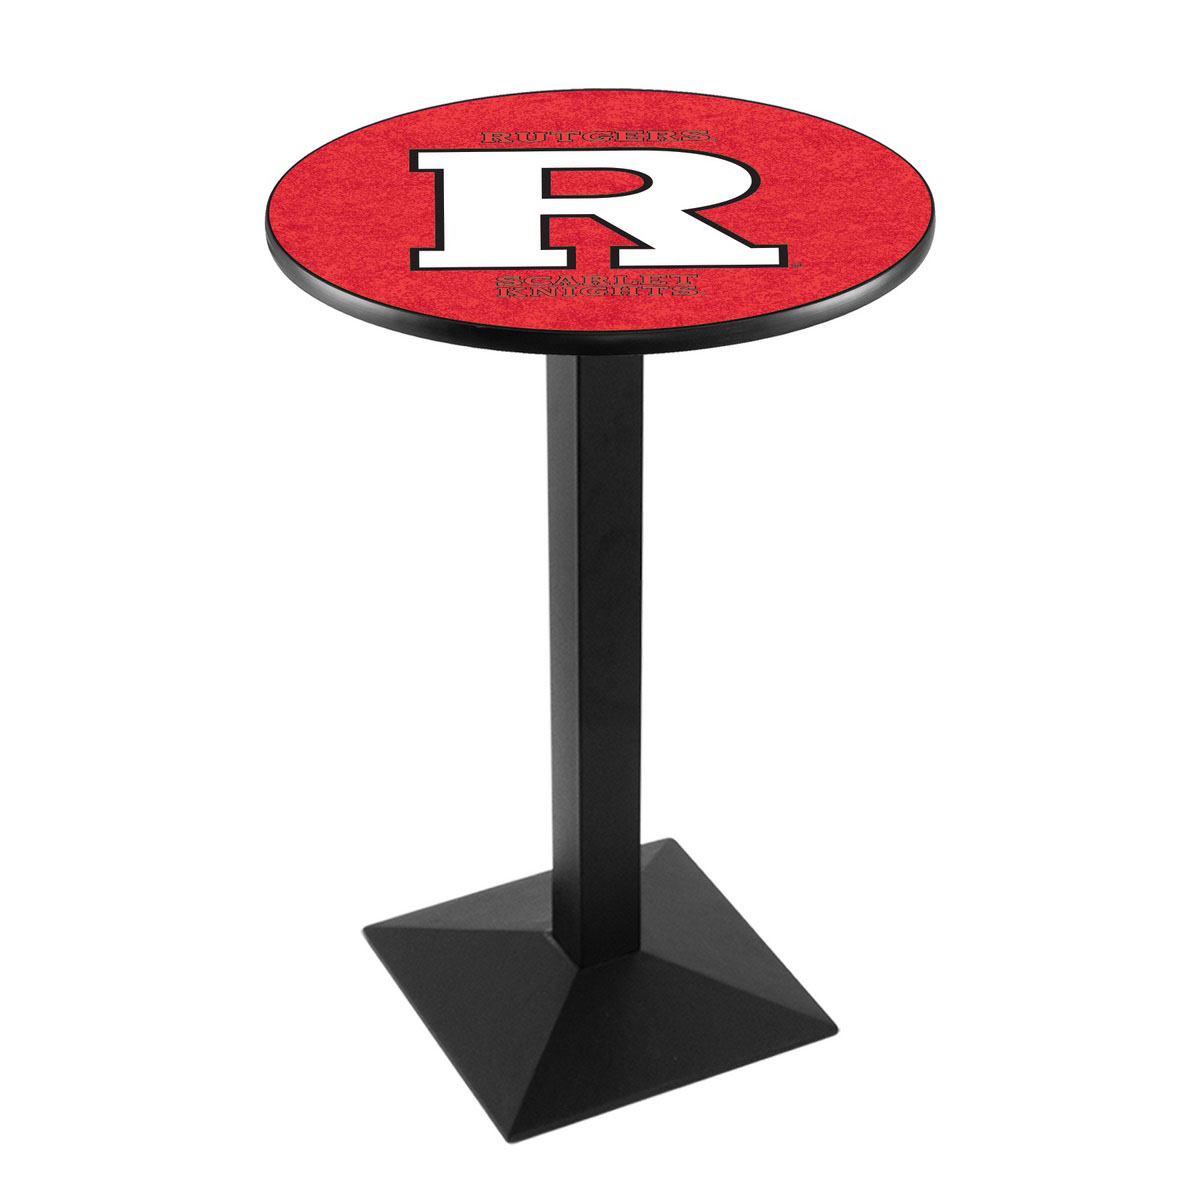 Buy Rutgers Logo Pub Bar Table Square Stand Product Photo